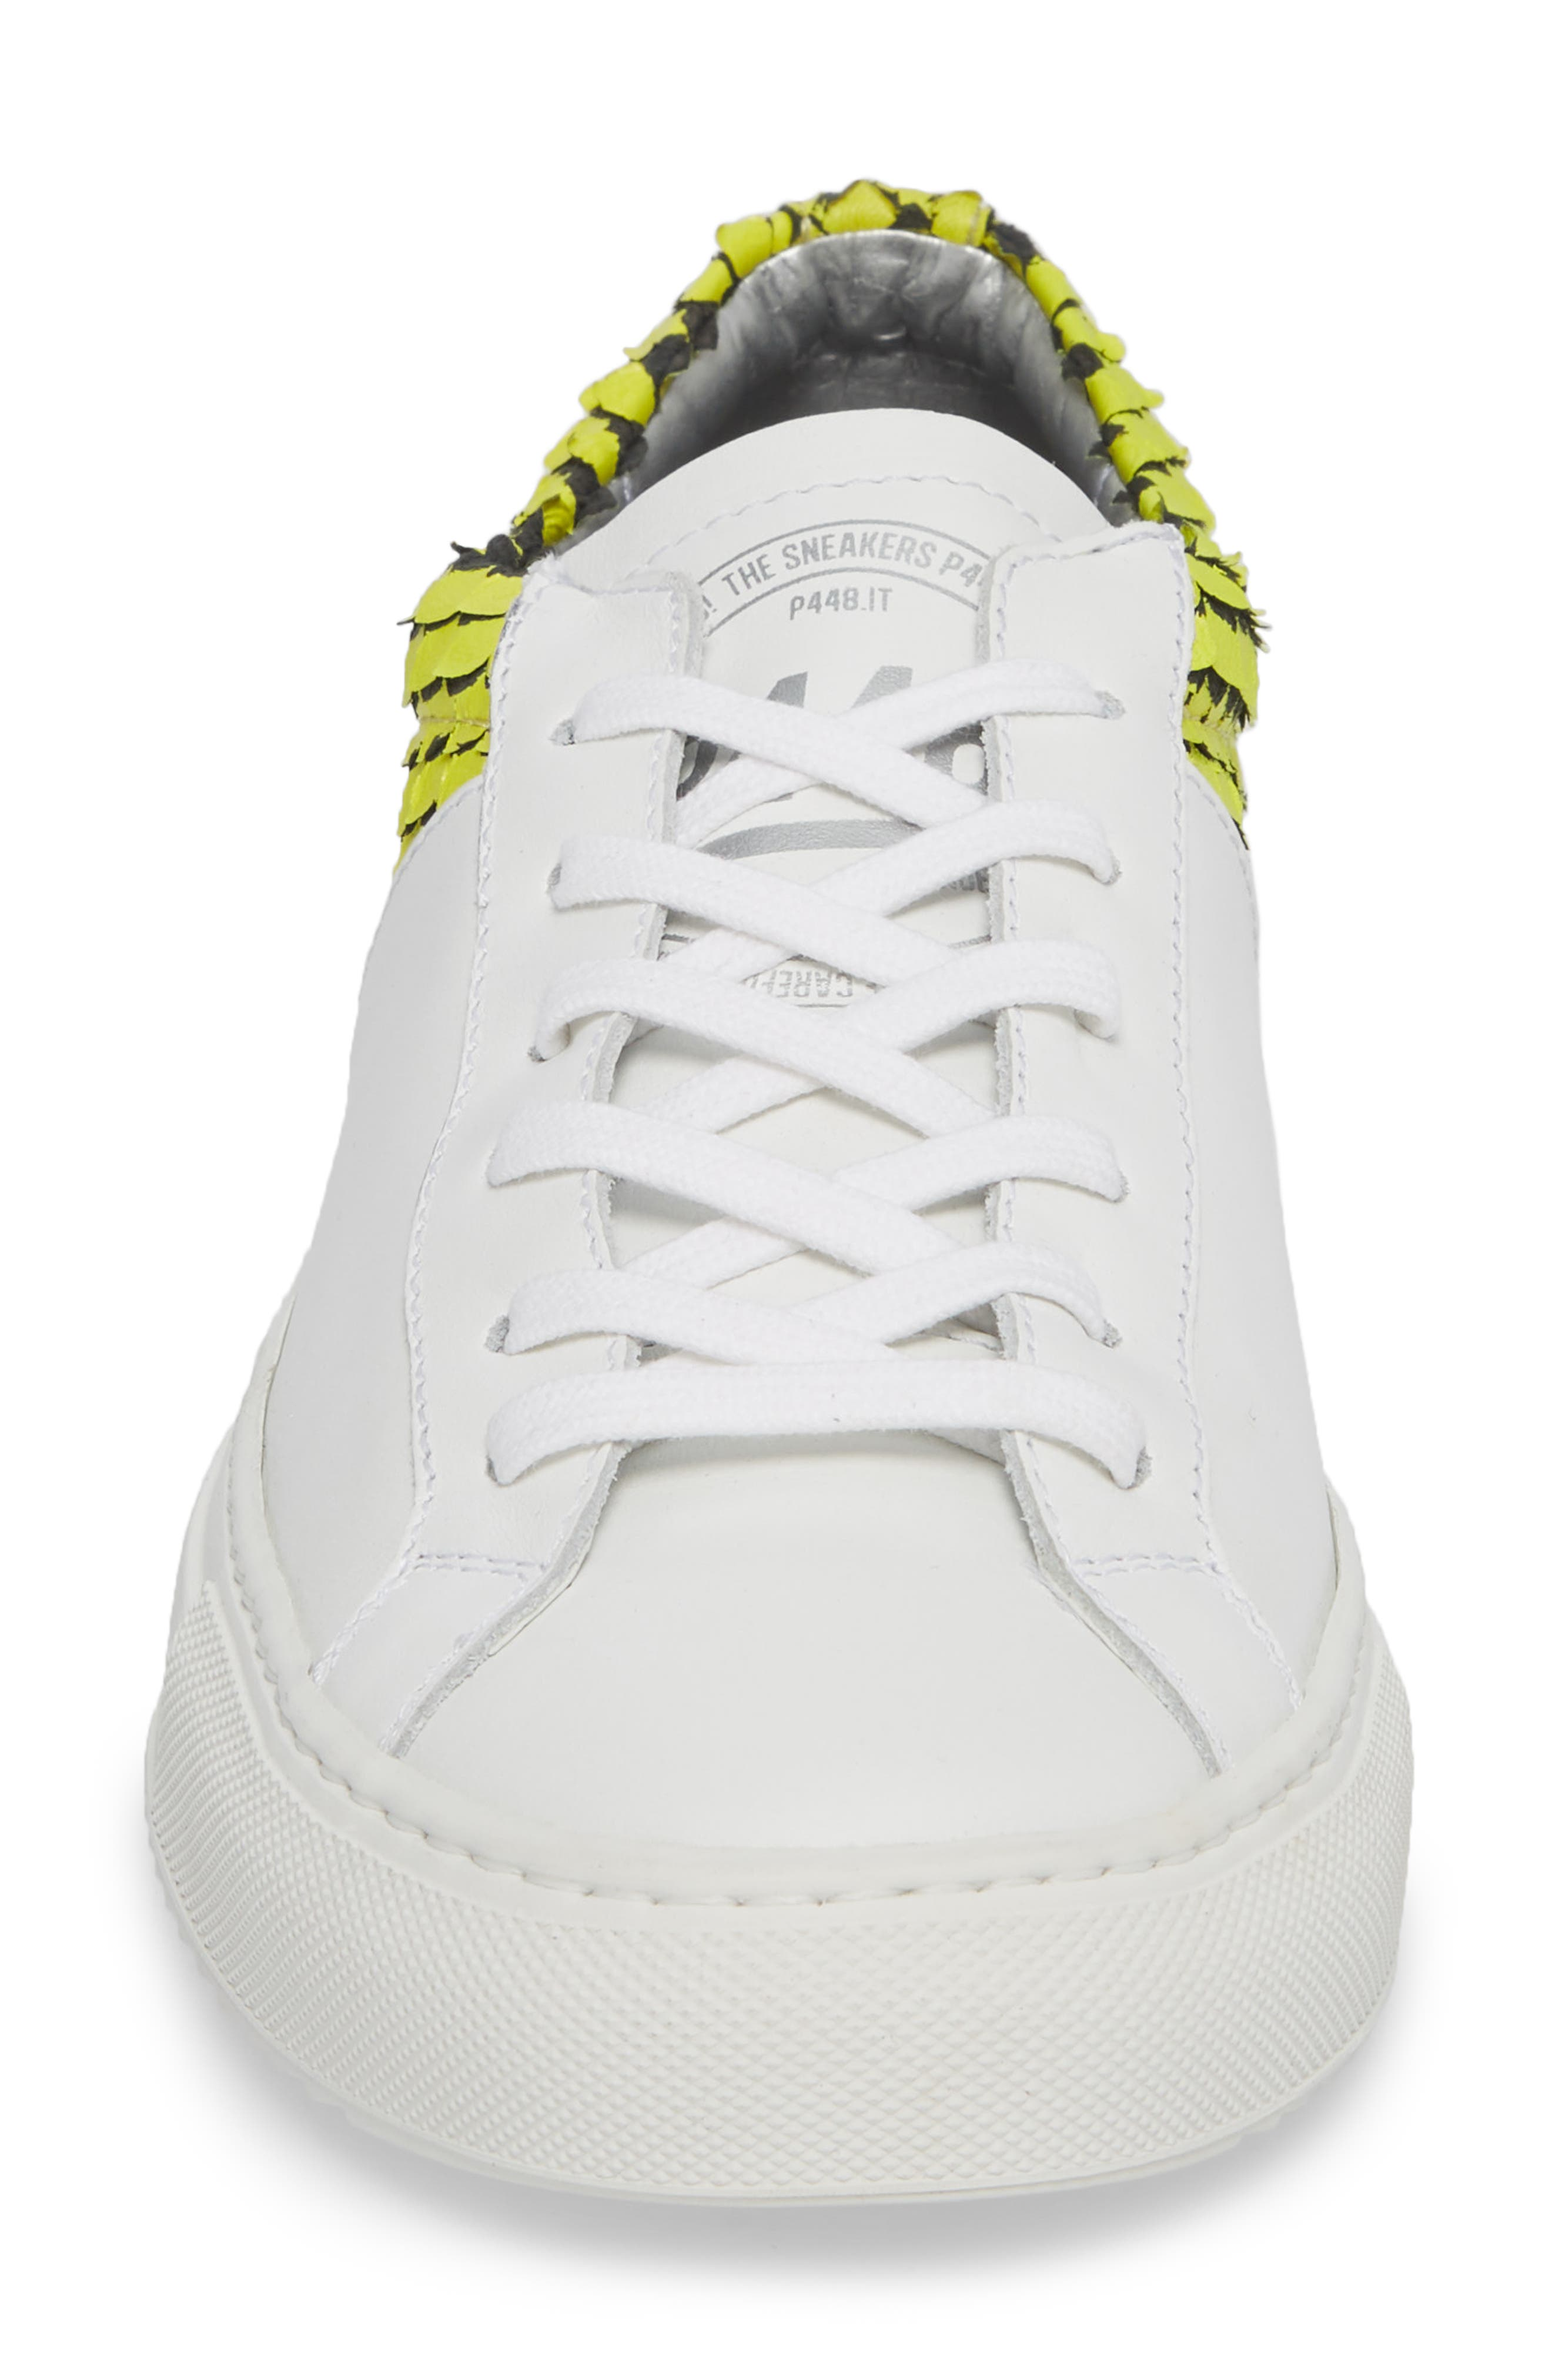 Onec Textured Low Top Sneaker,                             Alternate thumbnail 4, color,                             Python White